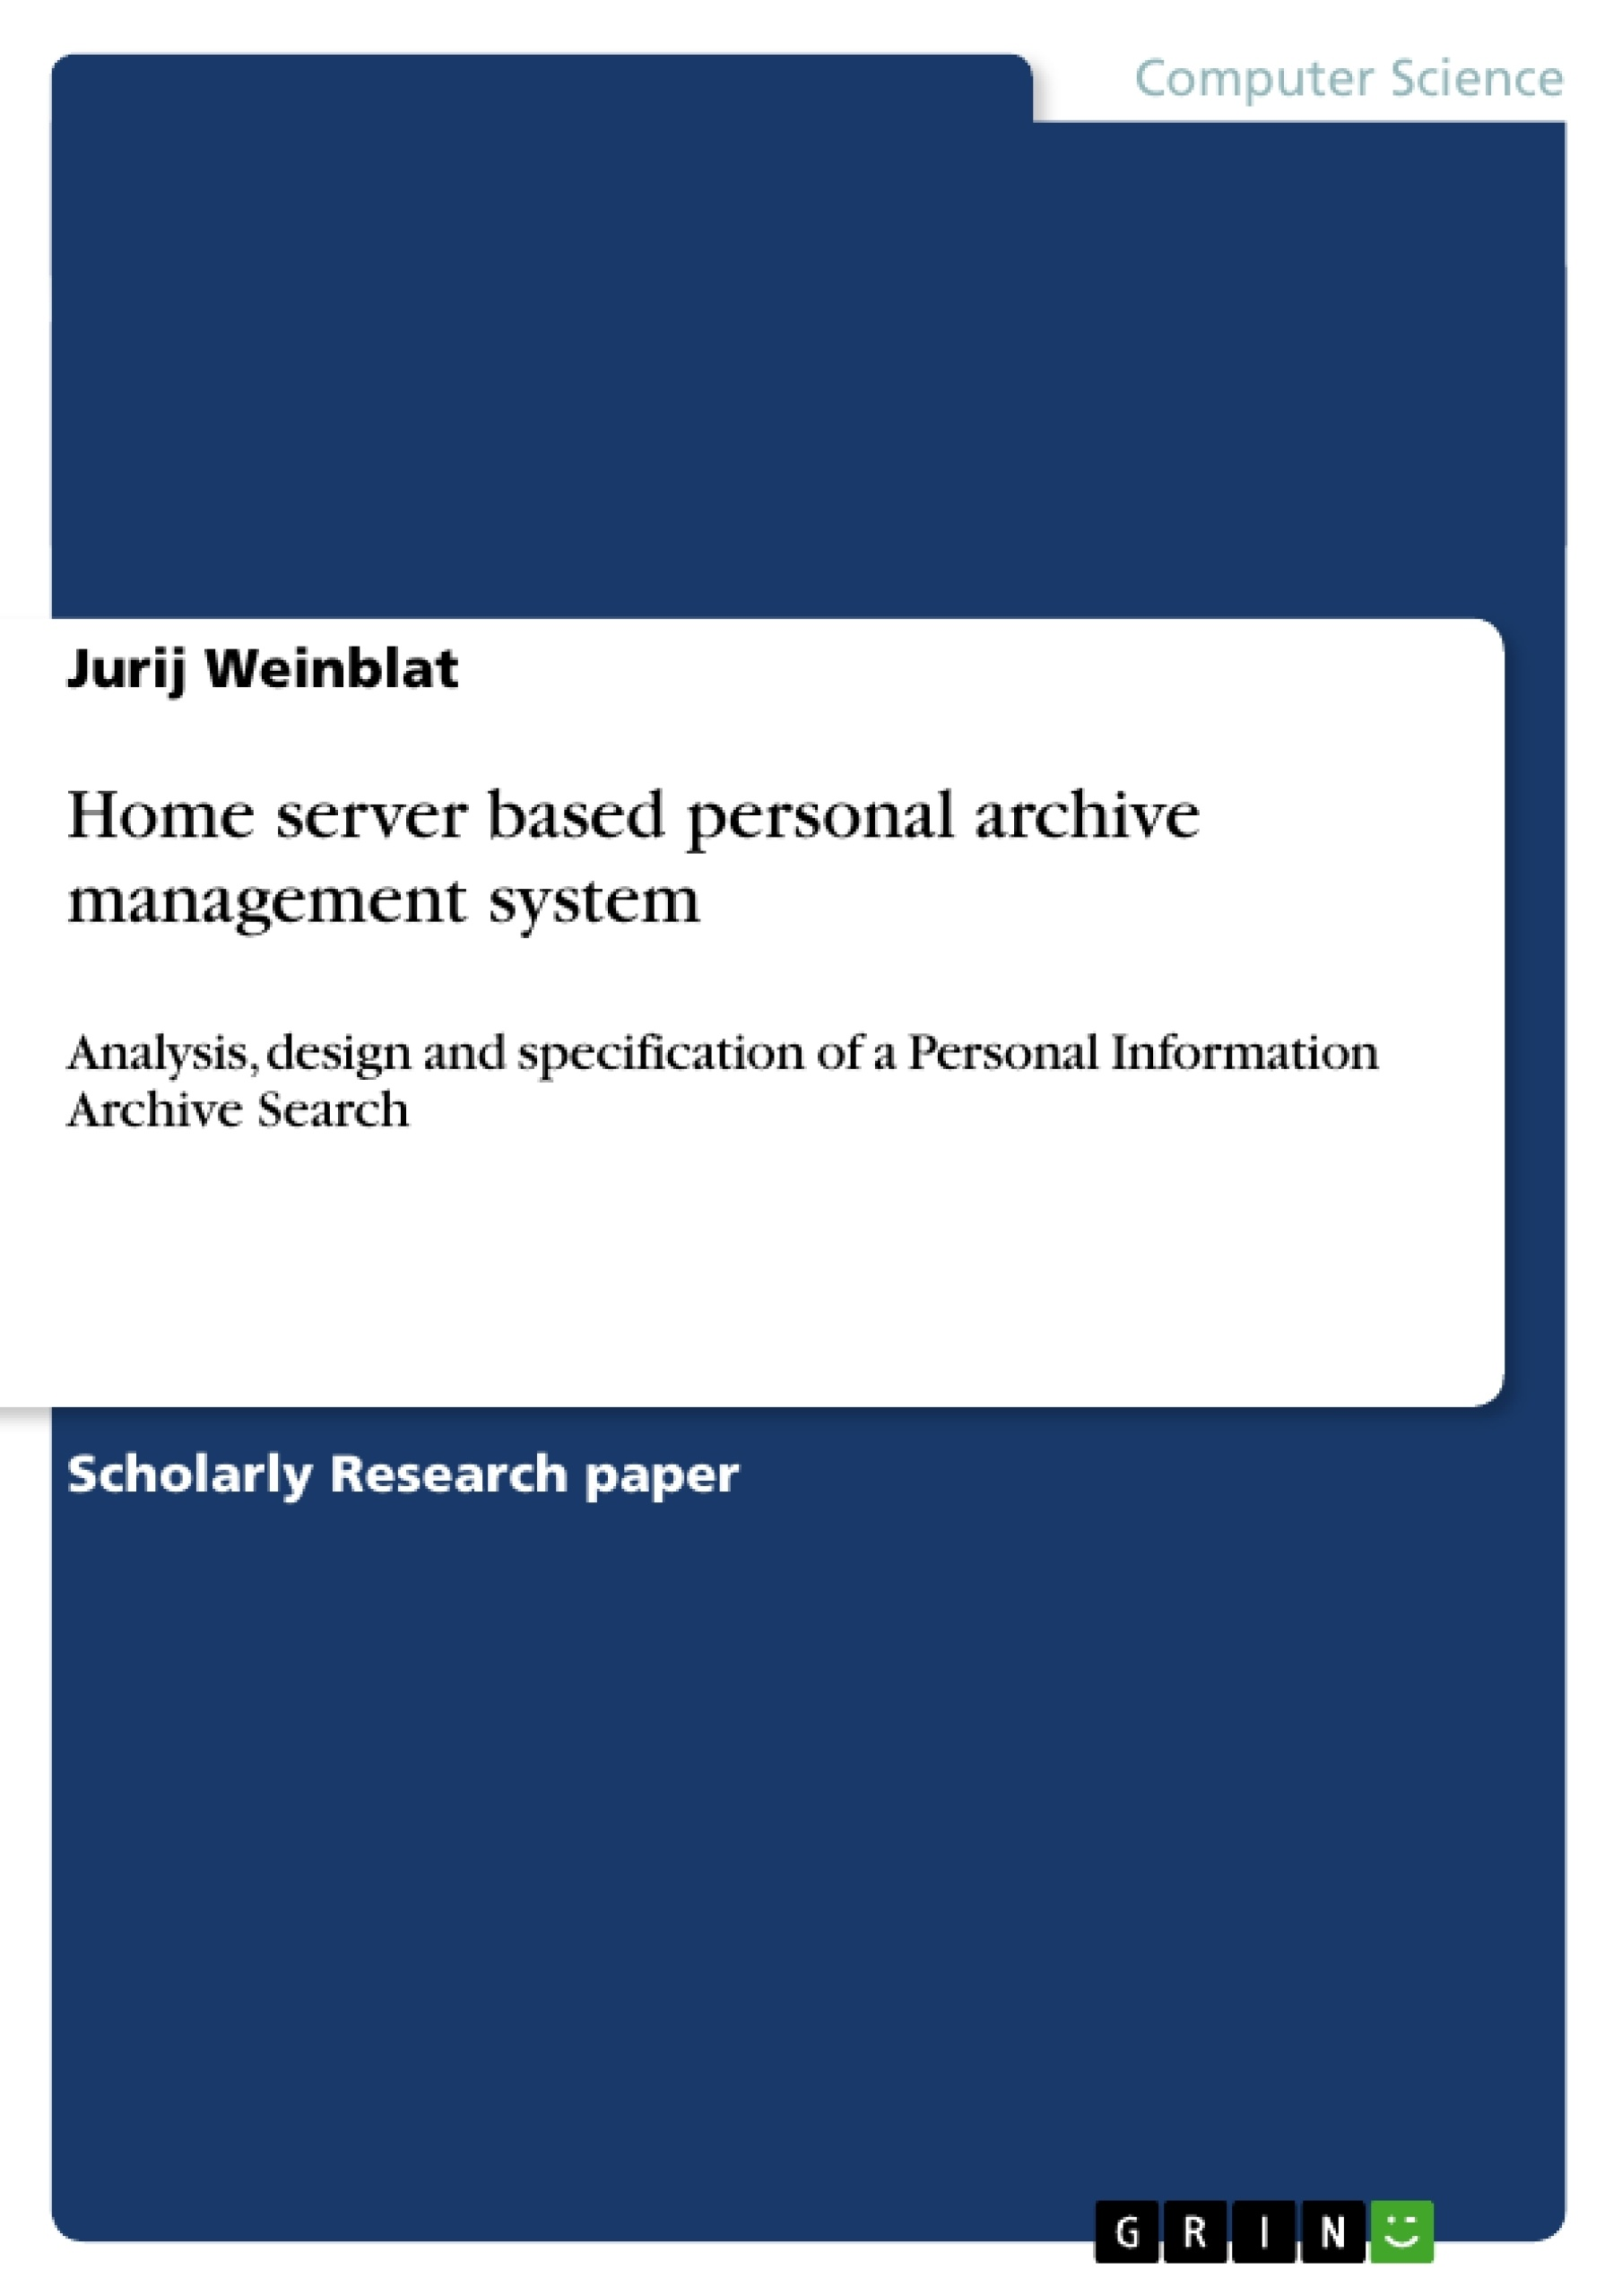 Title: Home server based personal archive management system